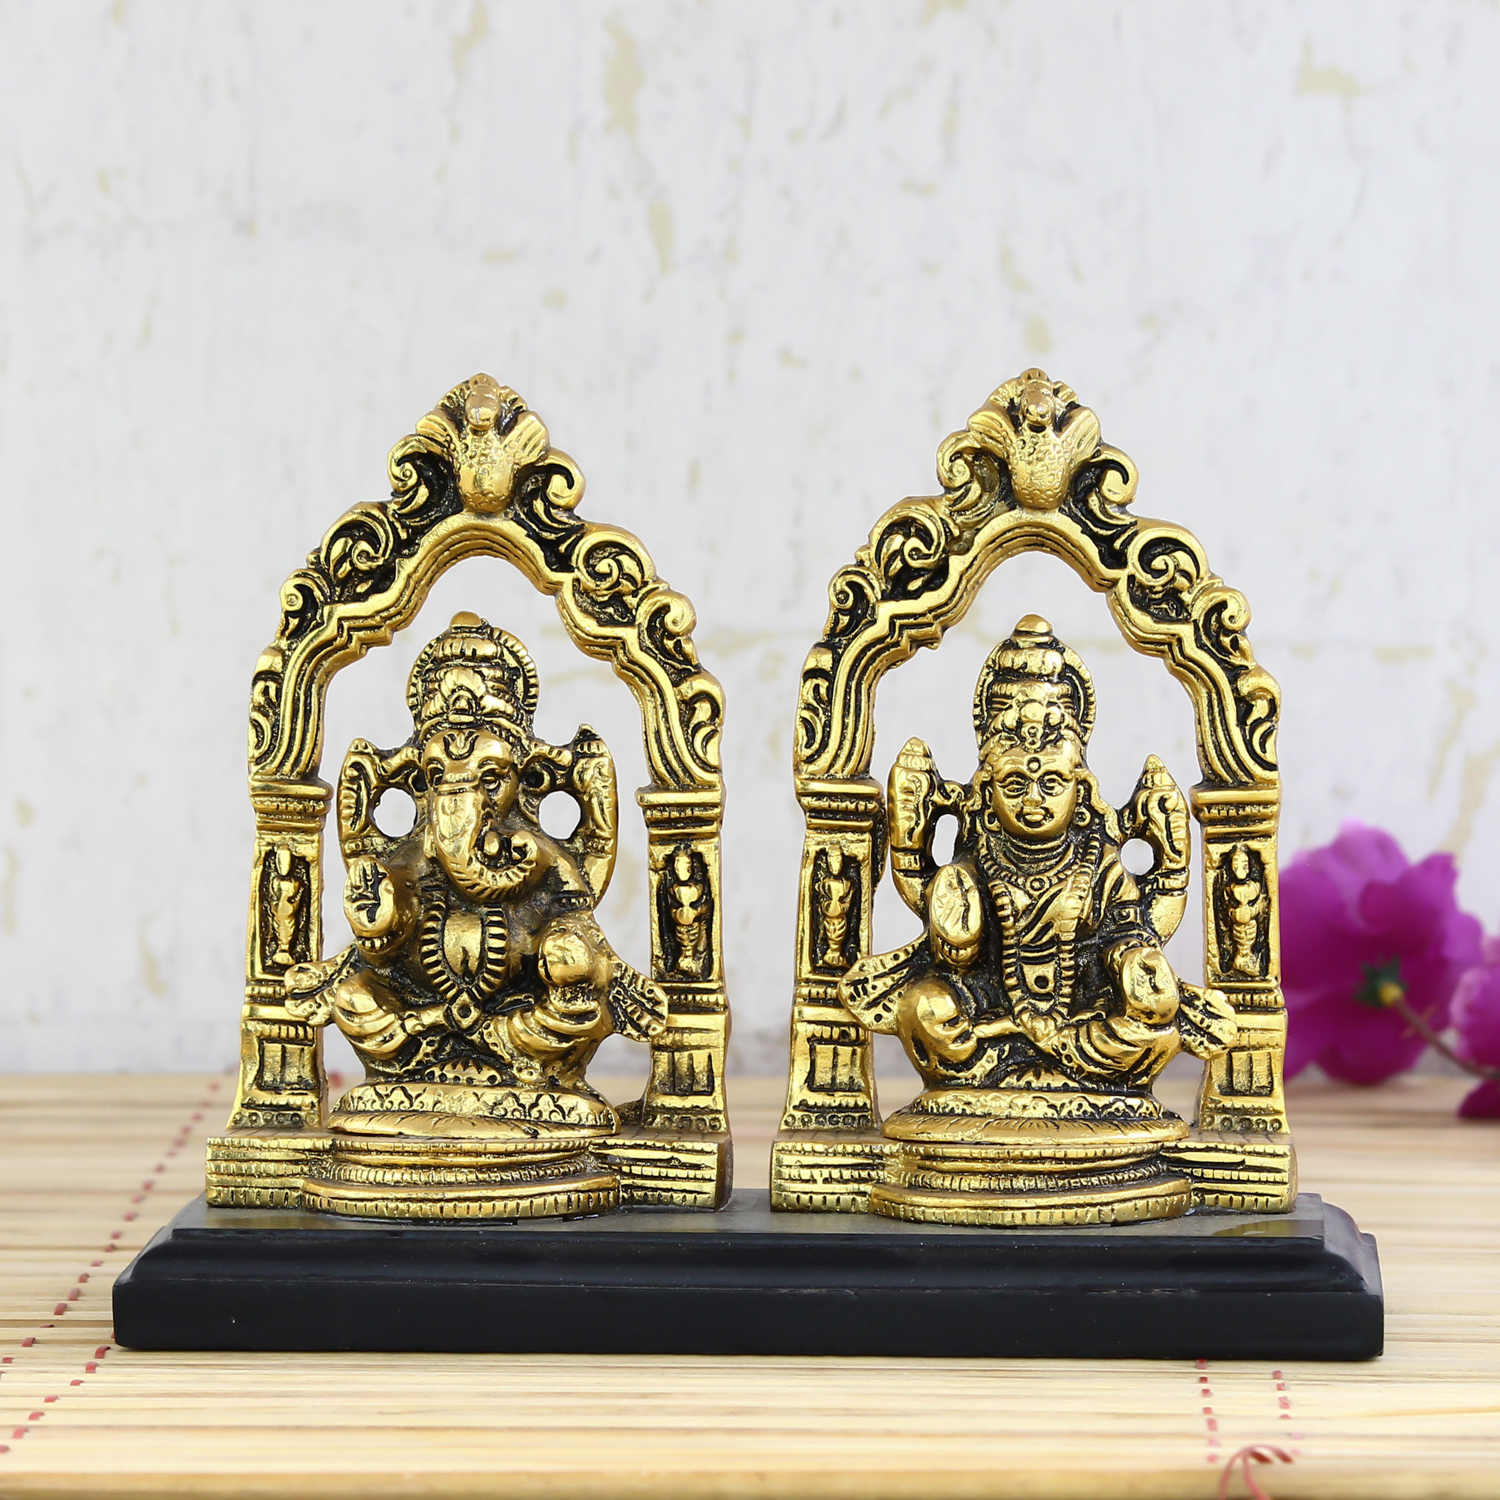 Golden Metal Statue of Goddess Laxmi and Lord Ganesha Indian Home Decor